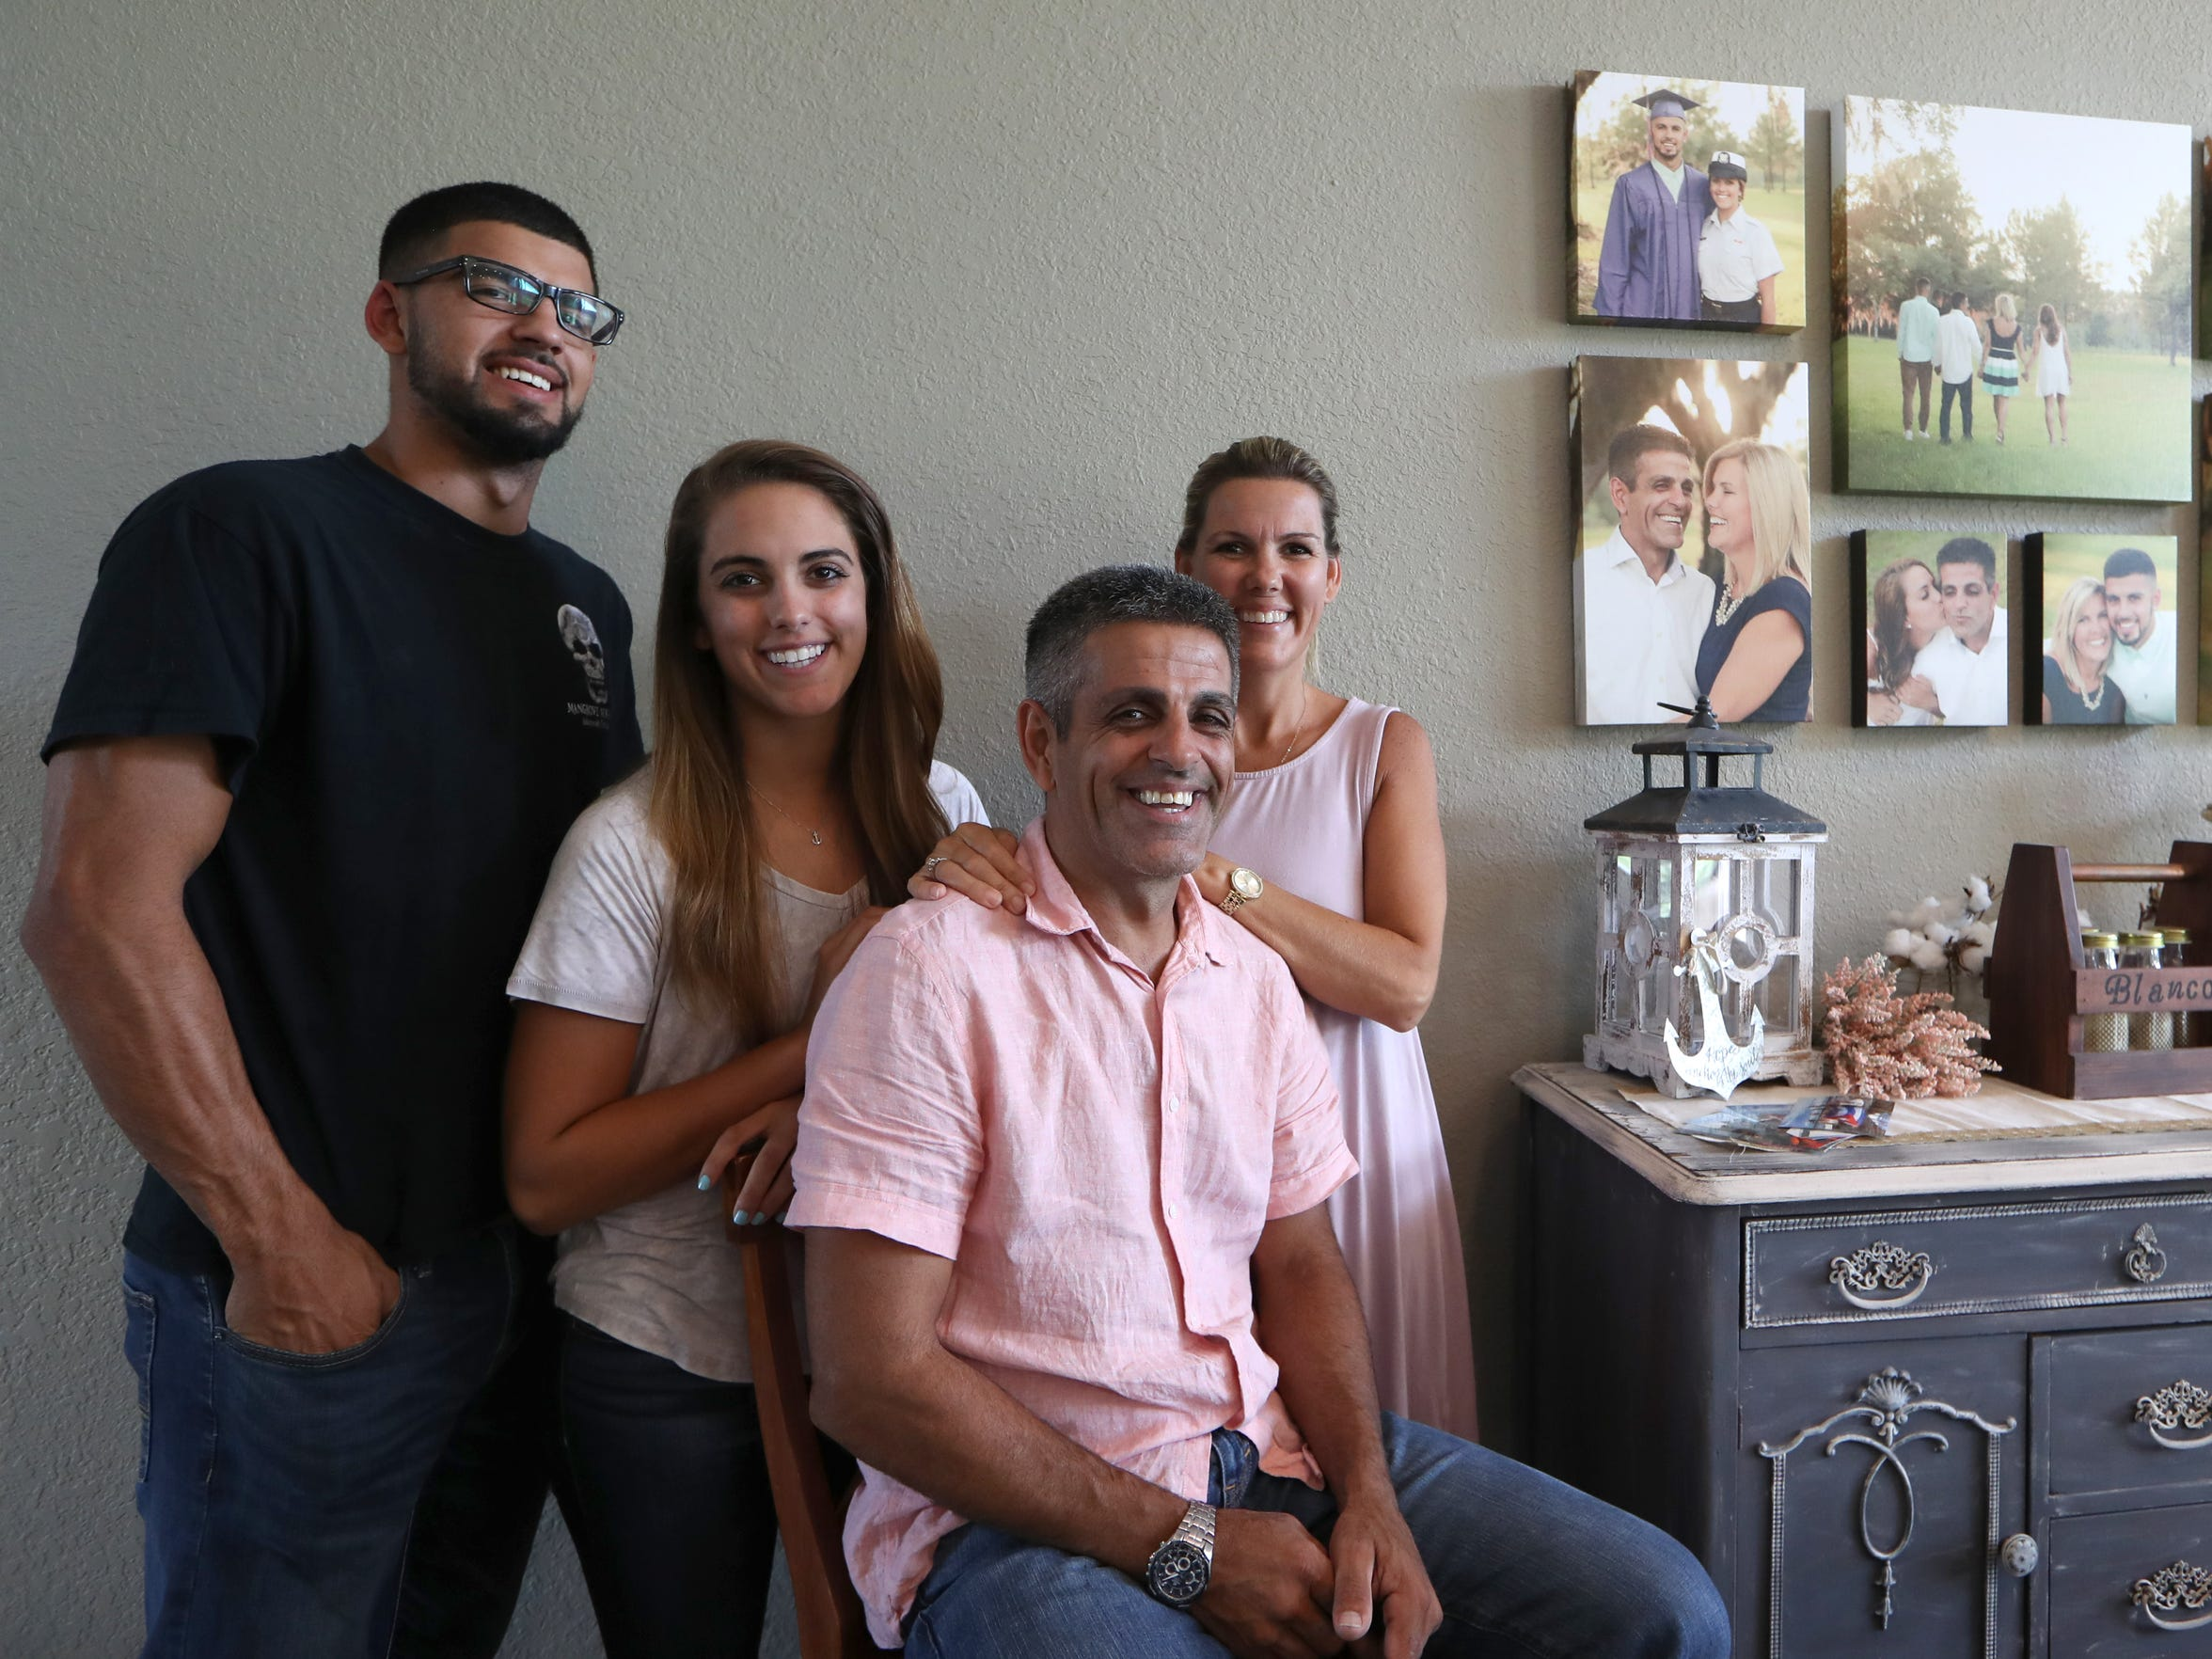 The Blanco family, from left, Noah, Hannah, and parents